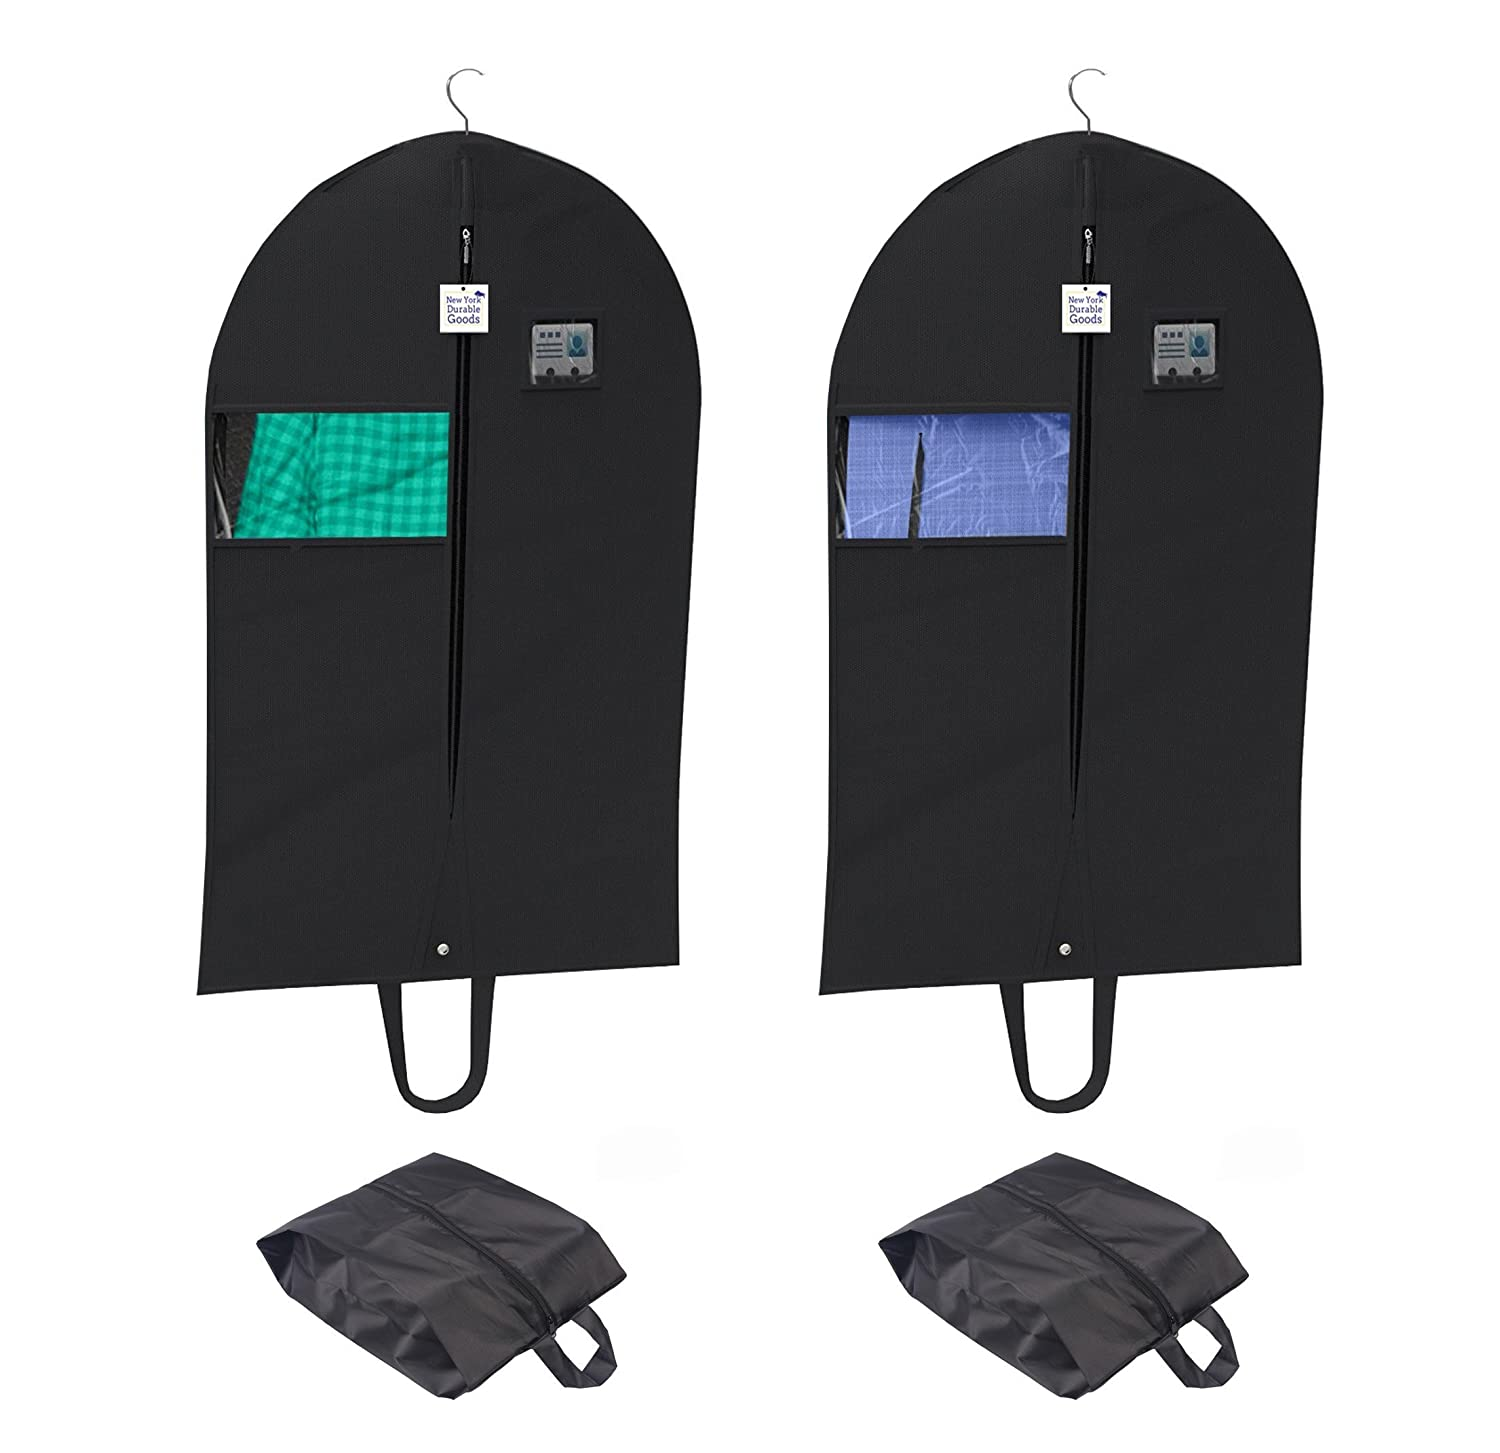 Dresses Set of Two Suitcase Covers 42 Inch with Set of Two Shoe Bags Set of 4 Window Viewing Breathable Garment Set Easy Carrying Shoulder Straps,PVC Card Holder New York Durable Goods Linens Suit Carriers